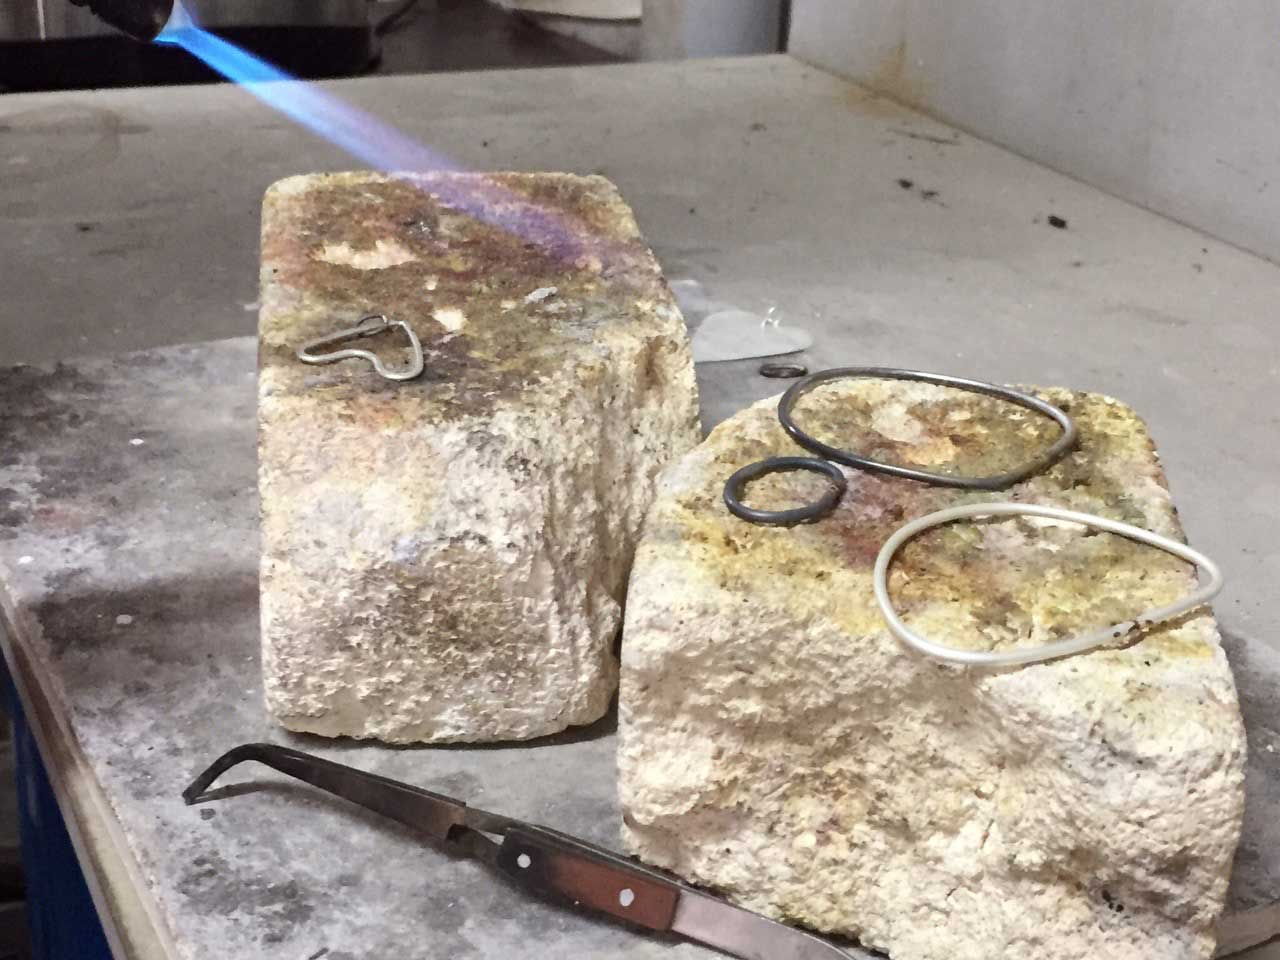 Using a torch to solder silver jewellery in Advanced Jewellery Course